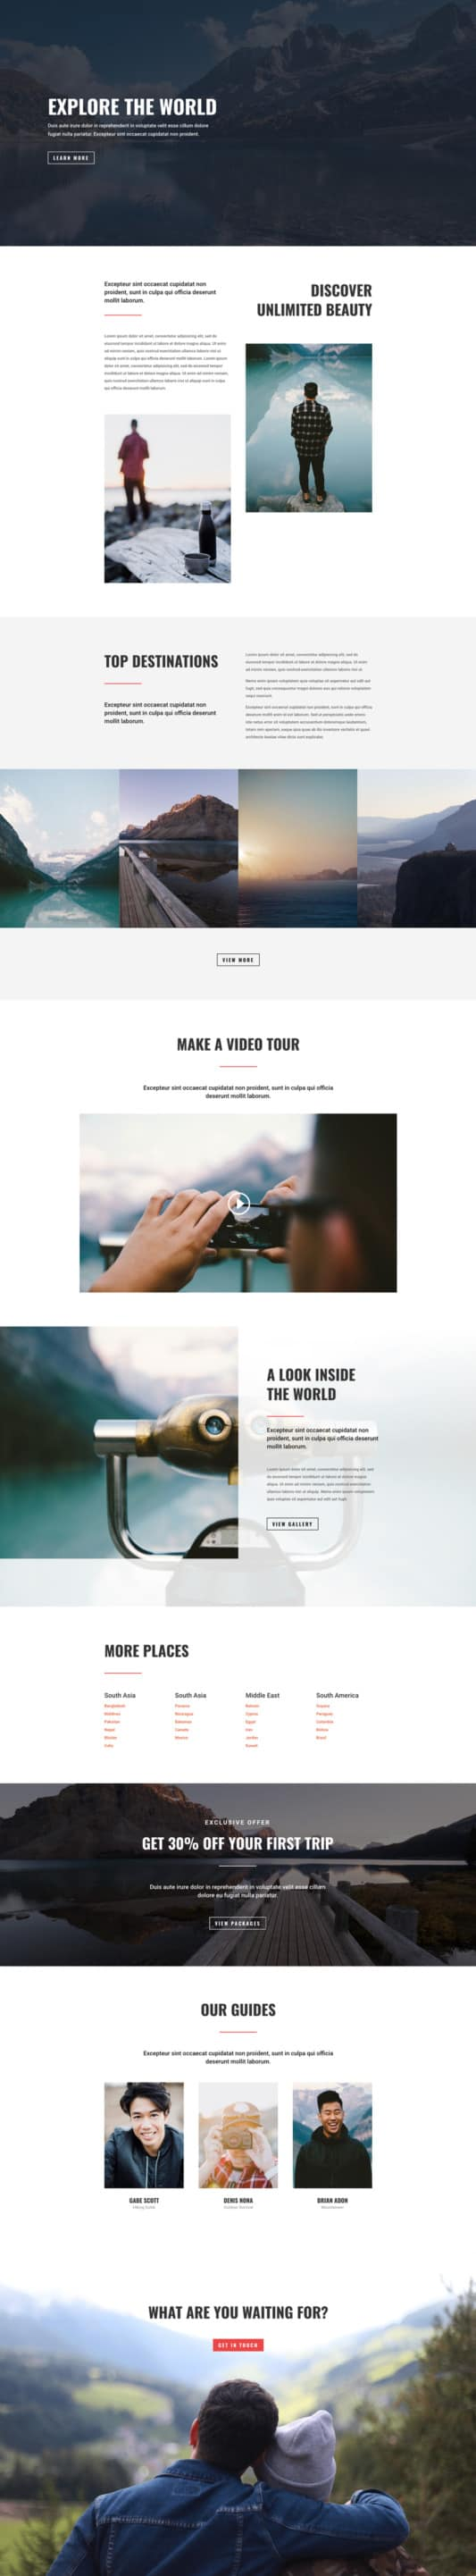 The Travel Agency Page Style: Homepage Design 1